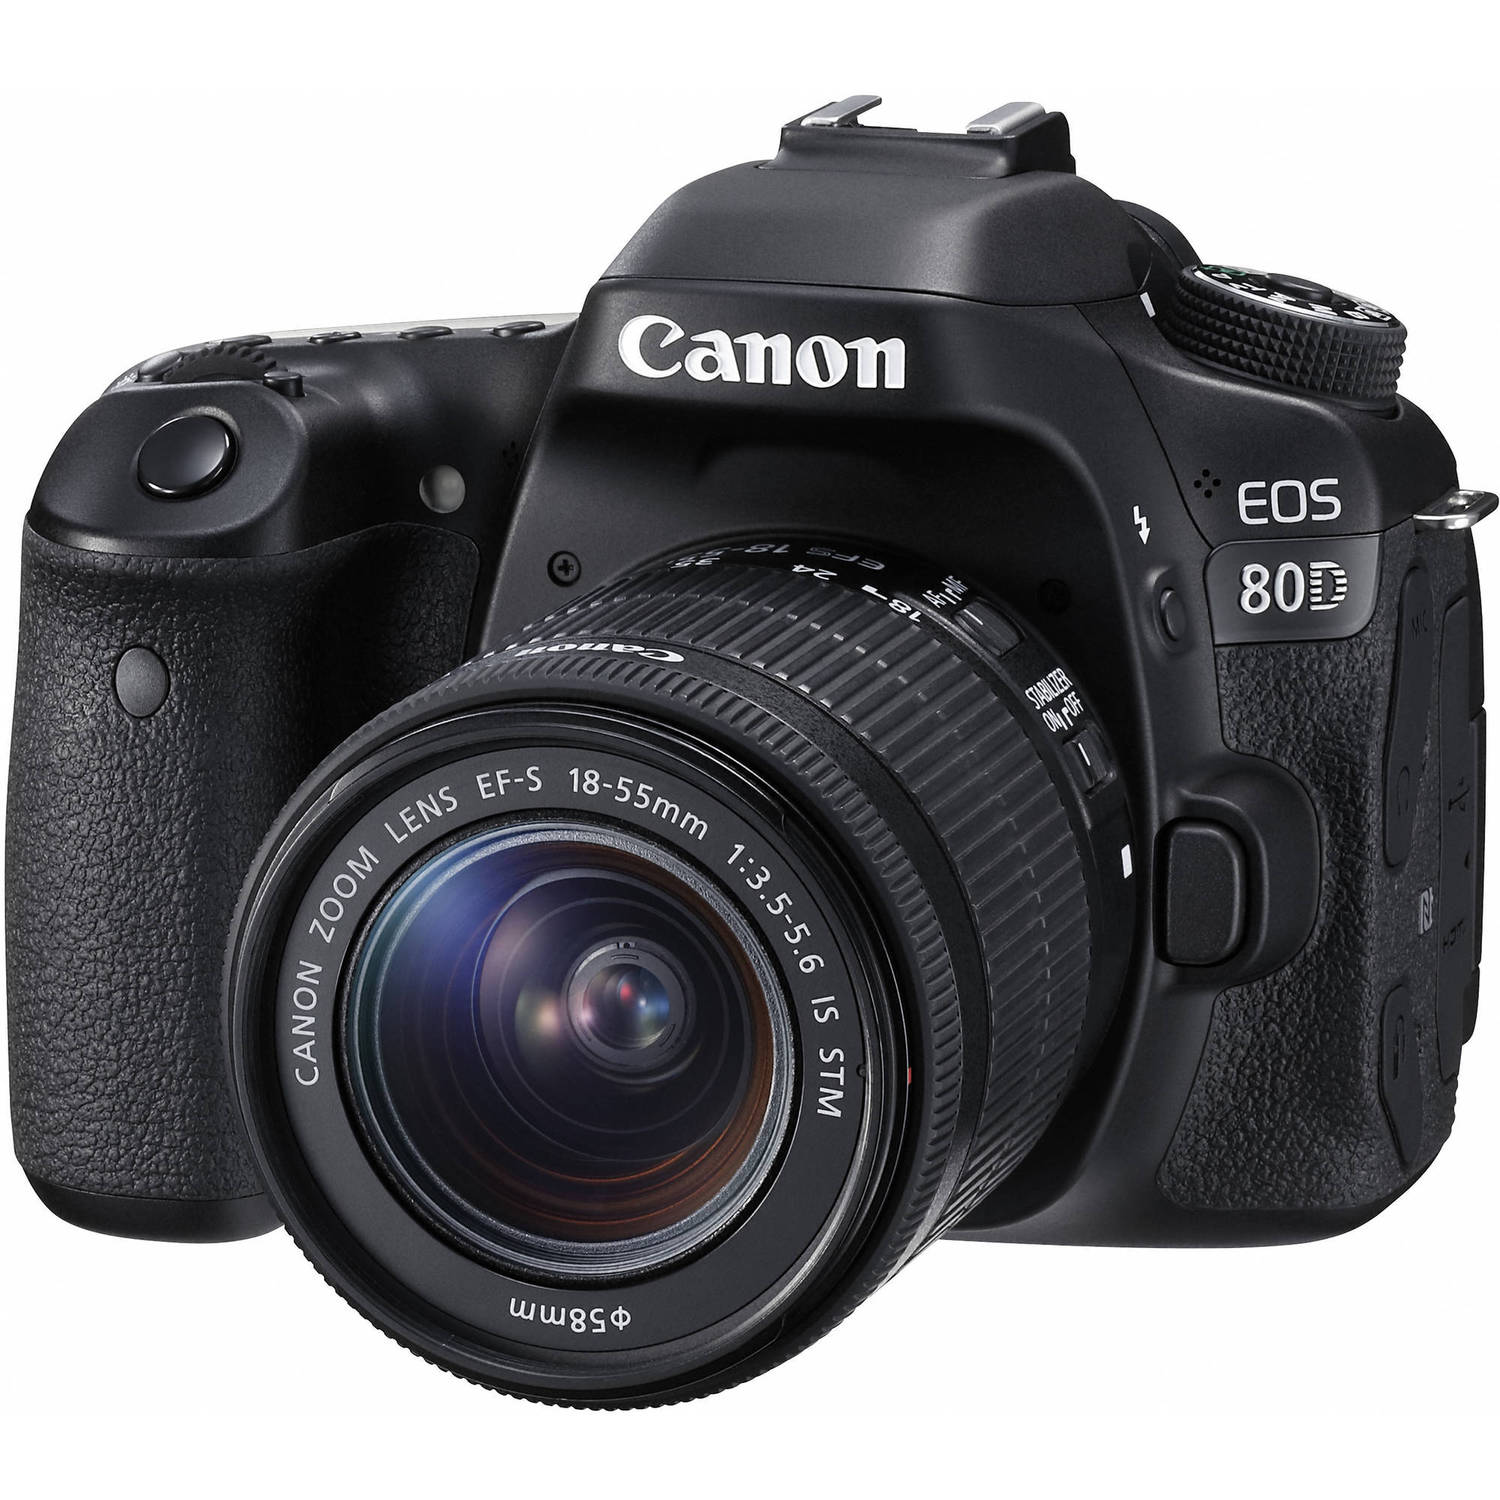 Canon Eos 80D Dslr Camera With 18-55Mm Lens 1263C005 B&Amp;H Photo